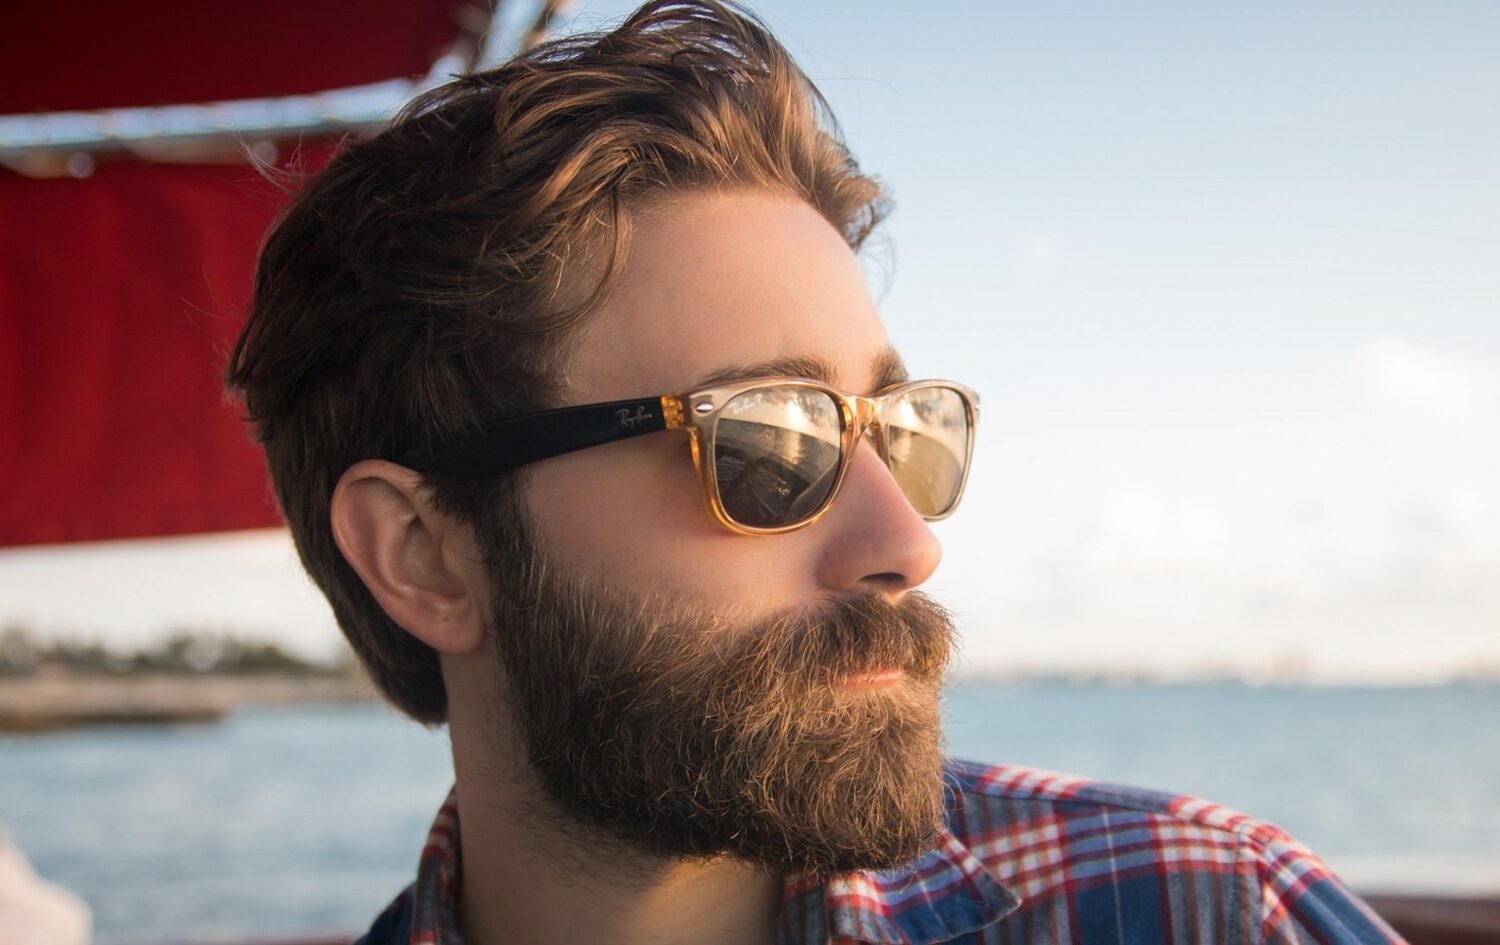 beard man with sunglasses at the beach